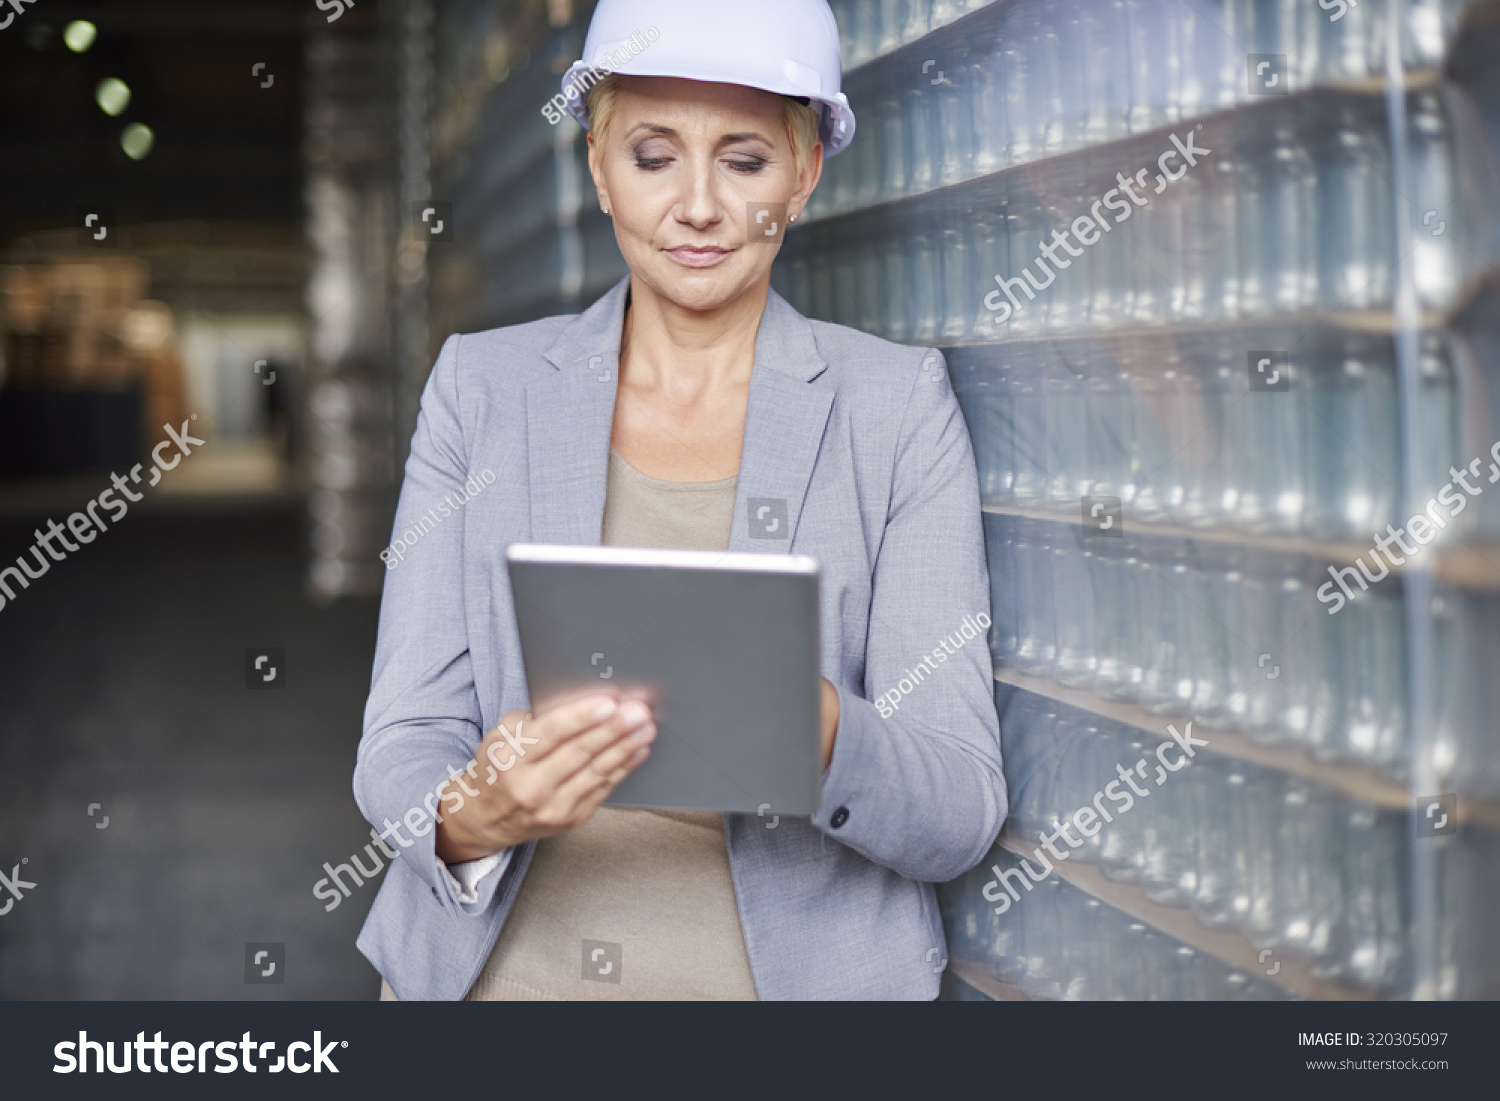 stock-photo-checking-the-new-software-for-delivery-of-merchandise-320305097.jpg